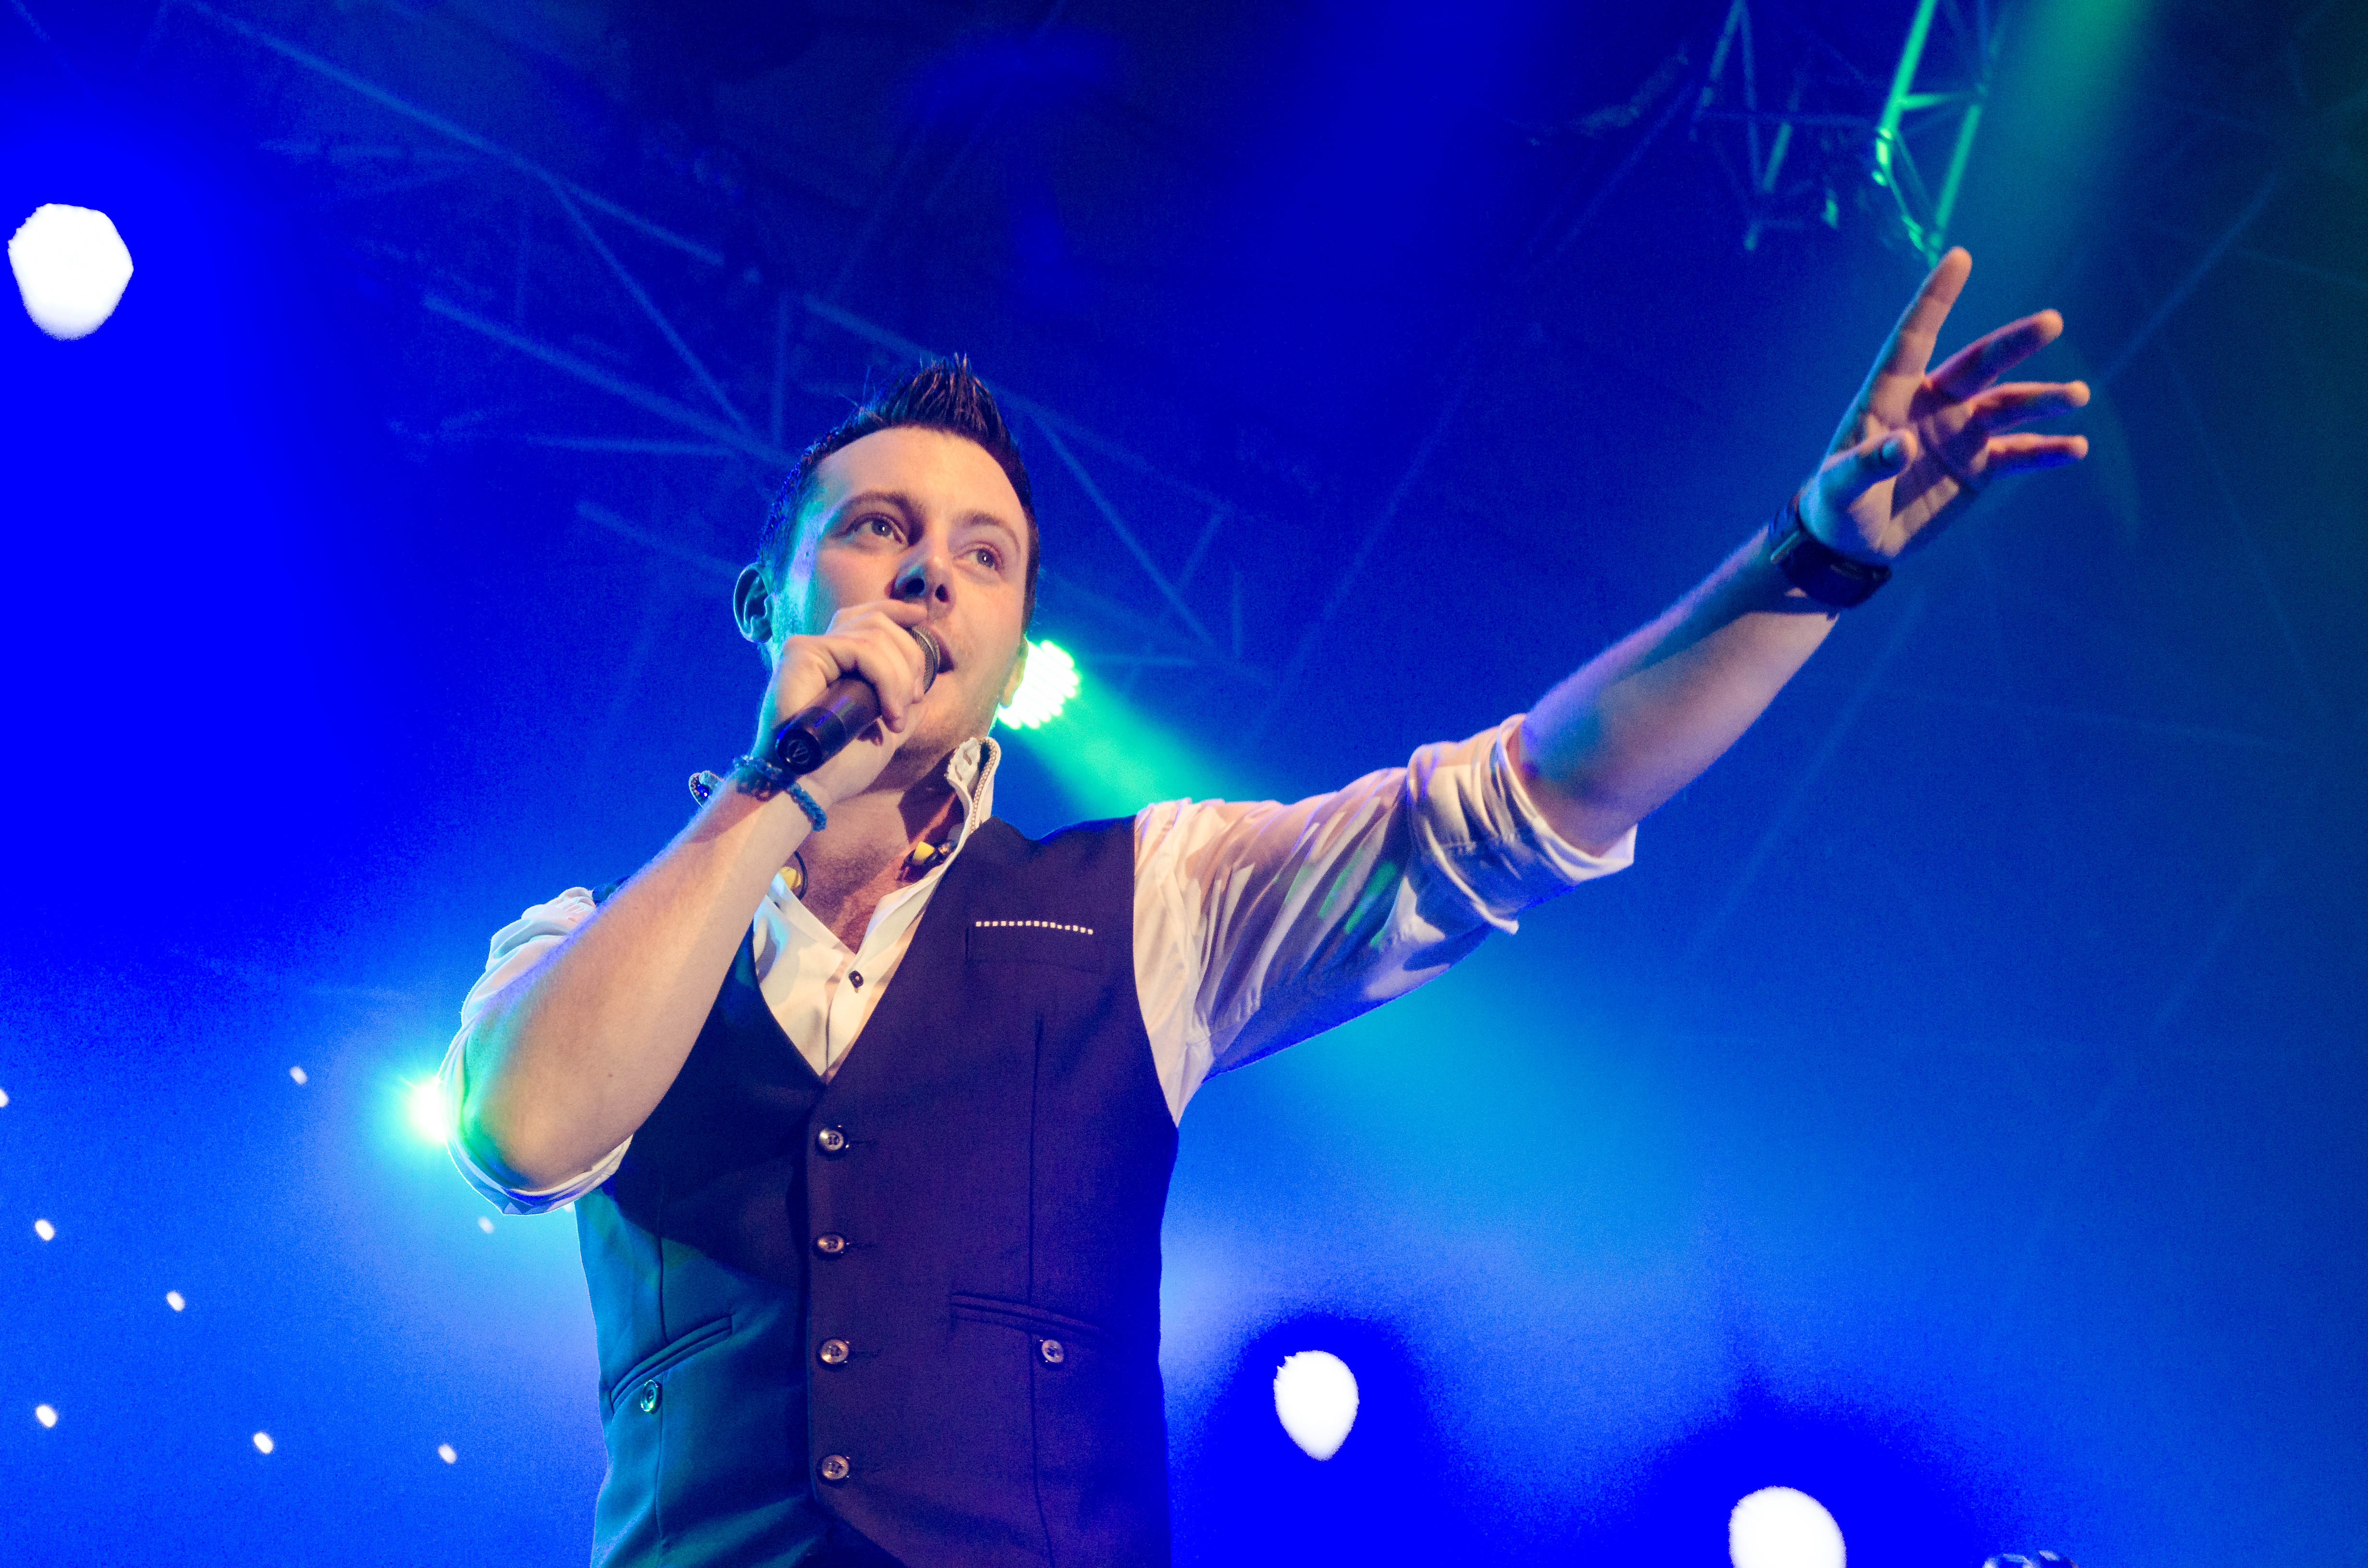 nathan-carter-at-the-marquee-cork-by-sean-smyth-15-6-14-42-of-55